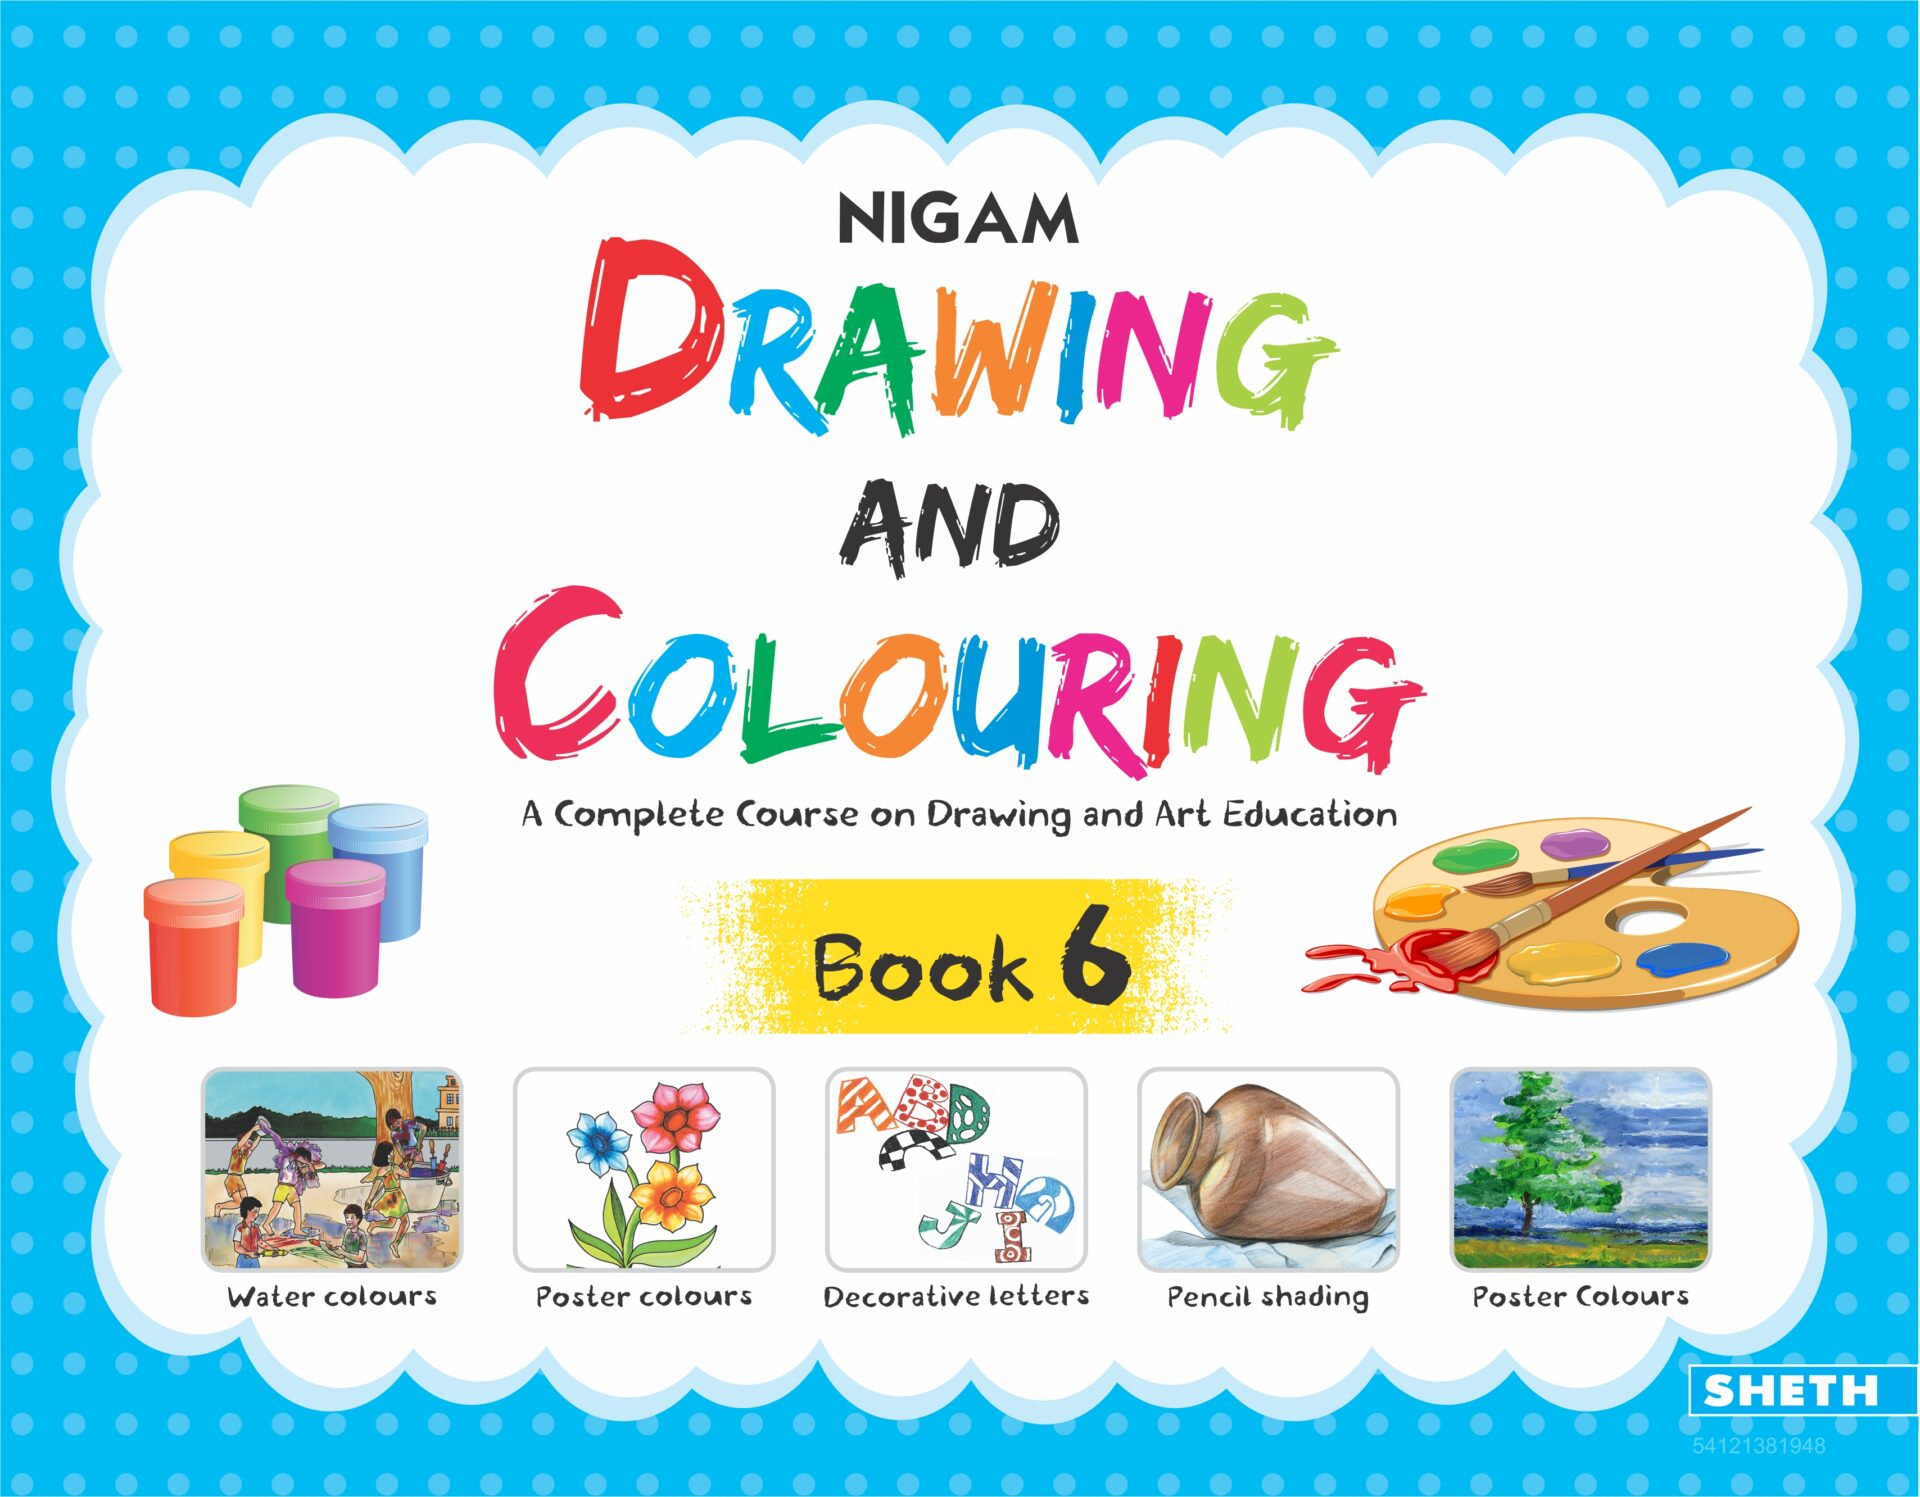 NIgam Drawing and Colouring Book 6 1